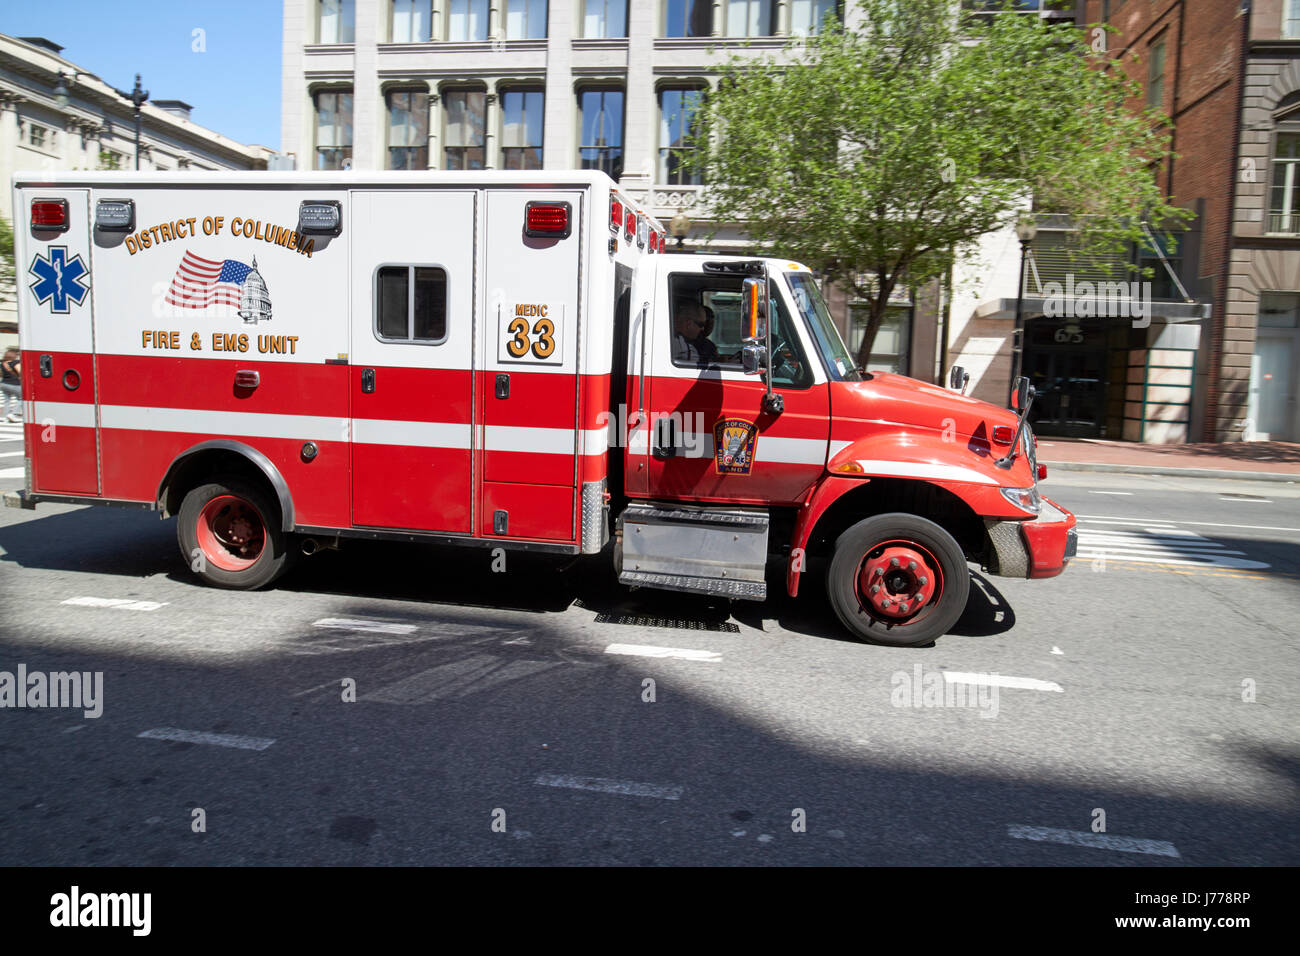 district of columbia fire and ems unit medic on call Washington DC USA - Stock Image